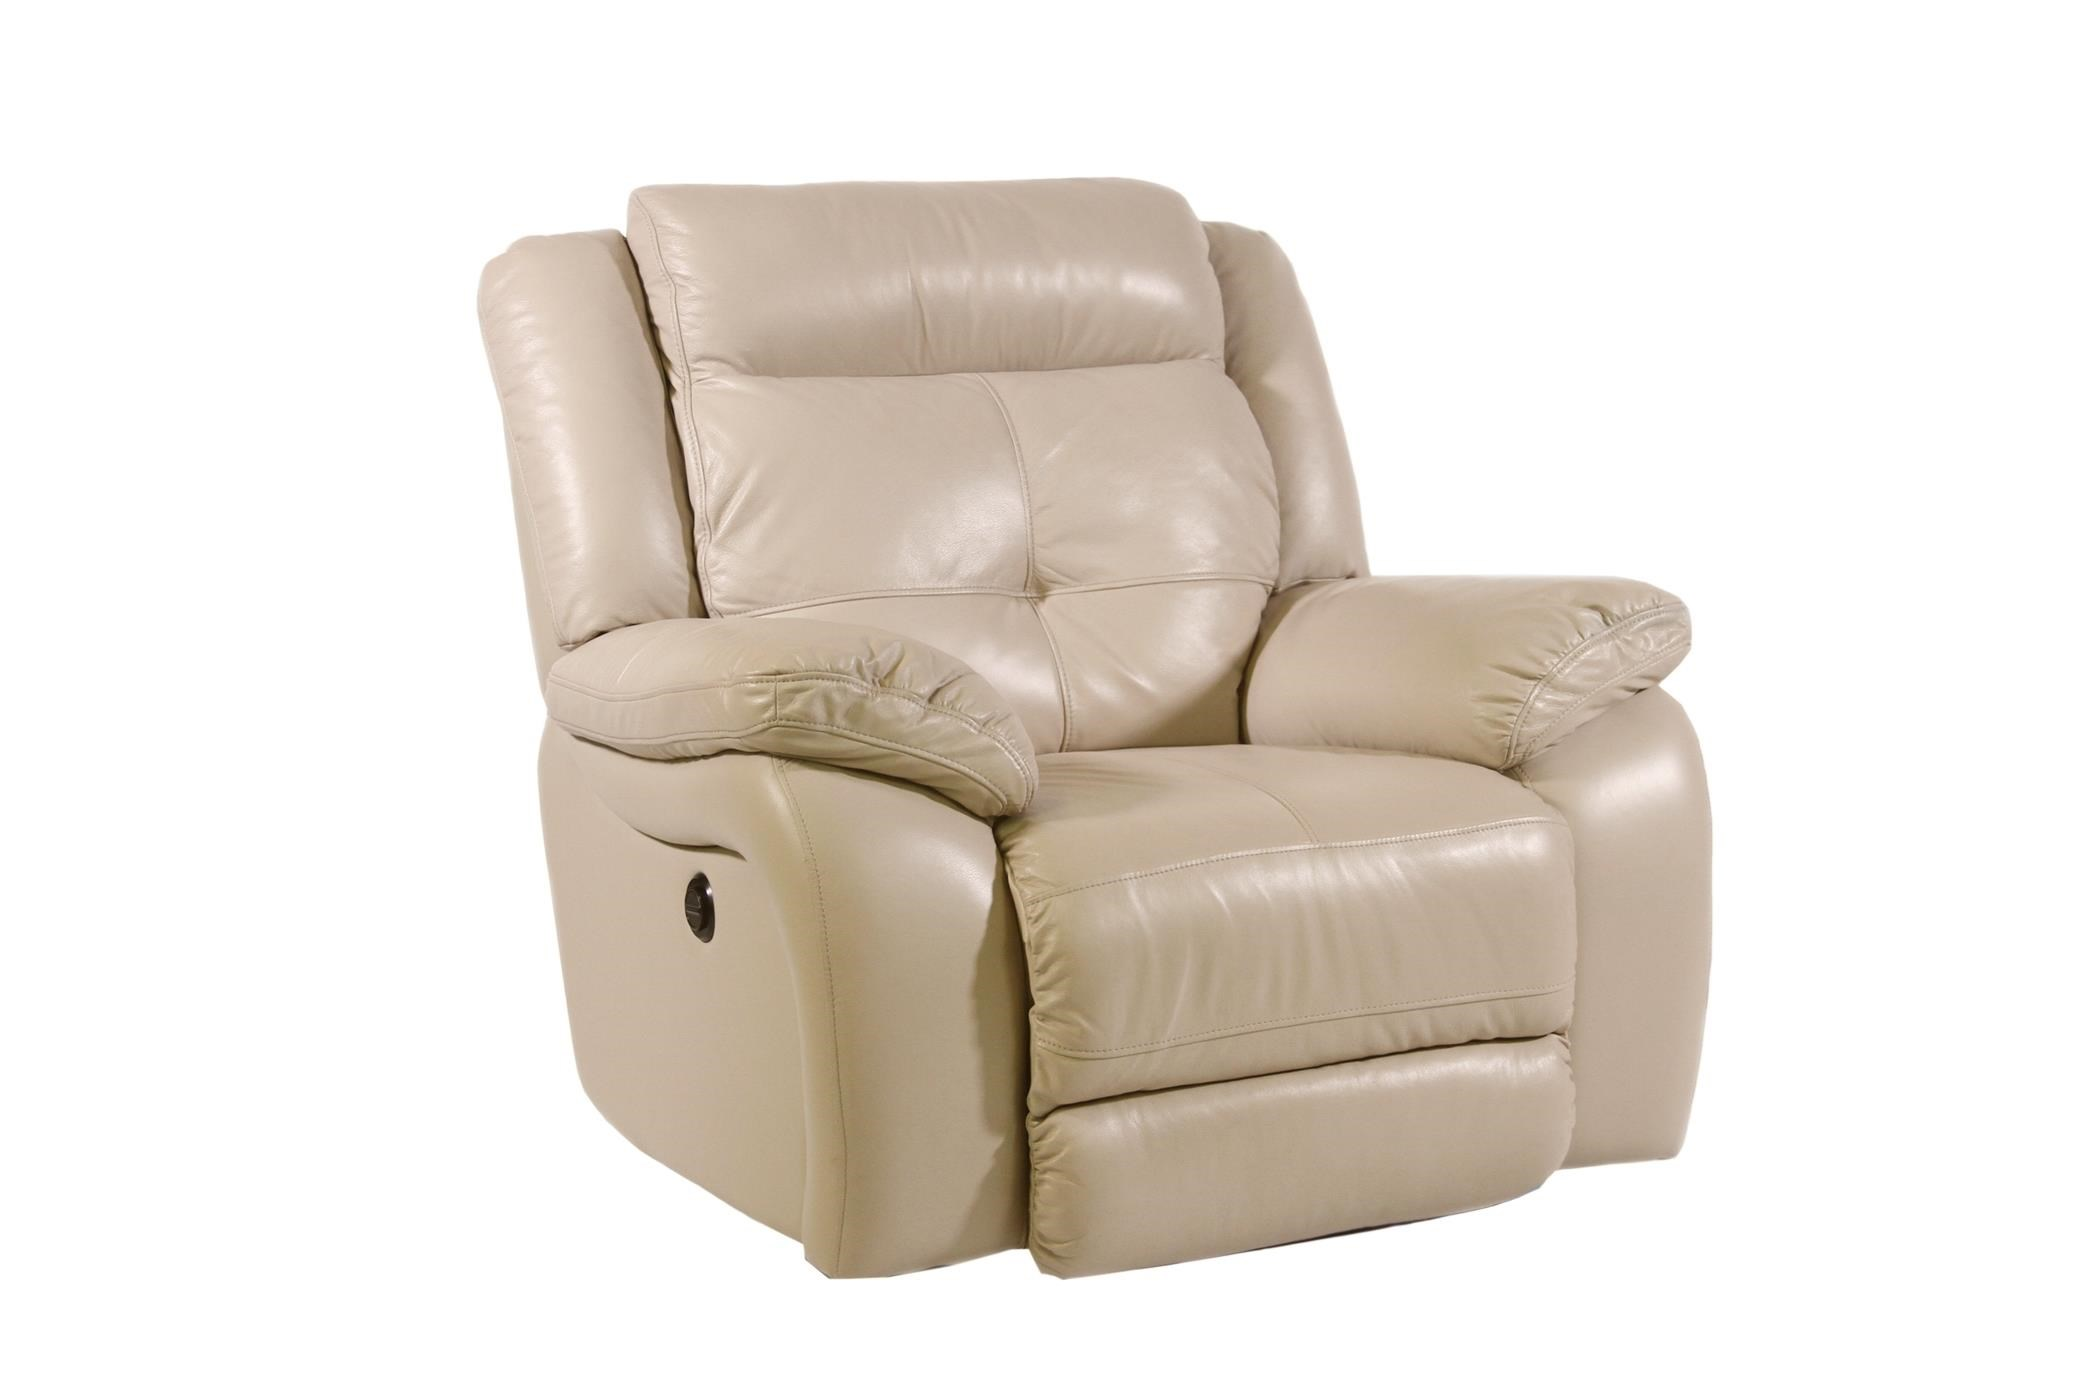 Futura Leather Pebble Power Reclining Chair - Item Number: E771-121